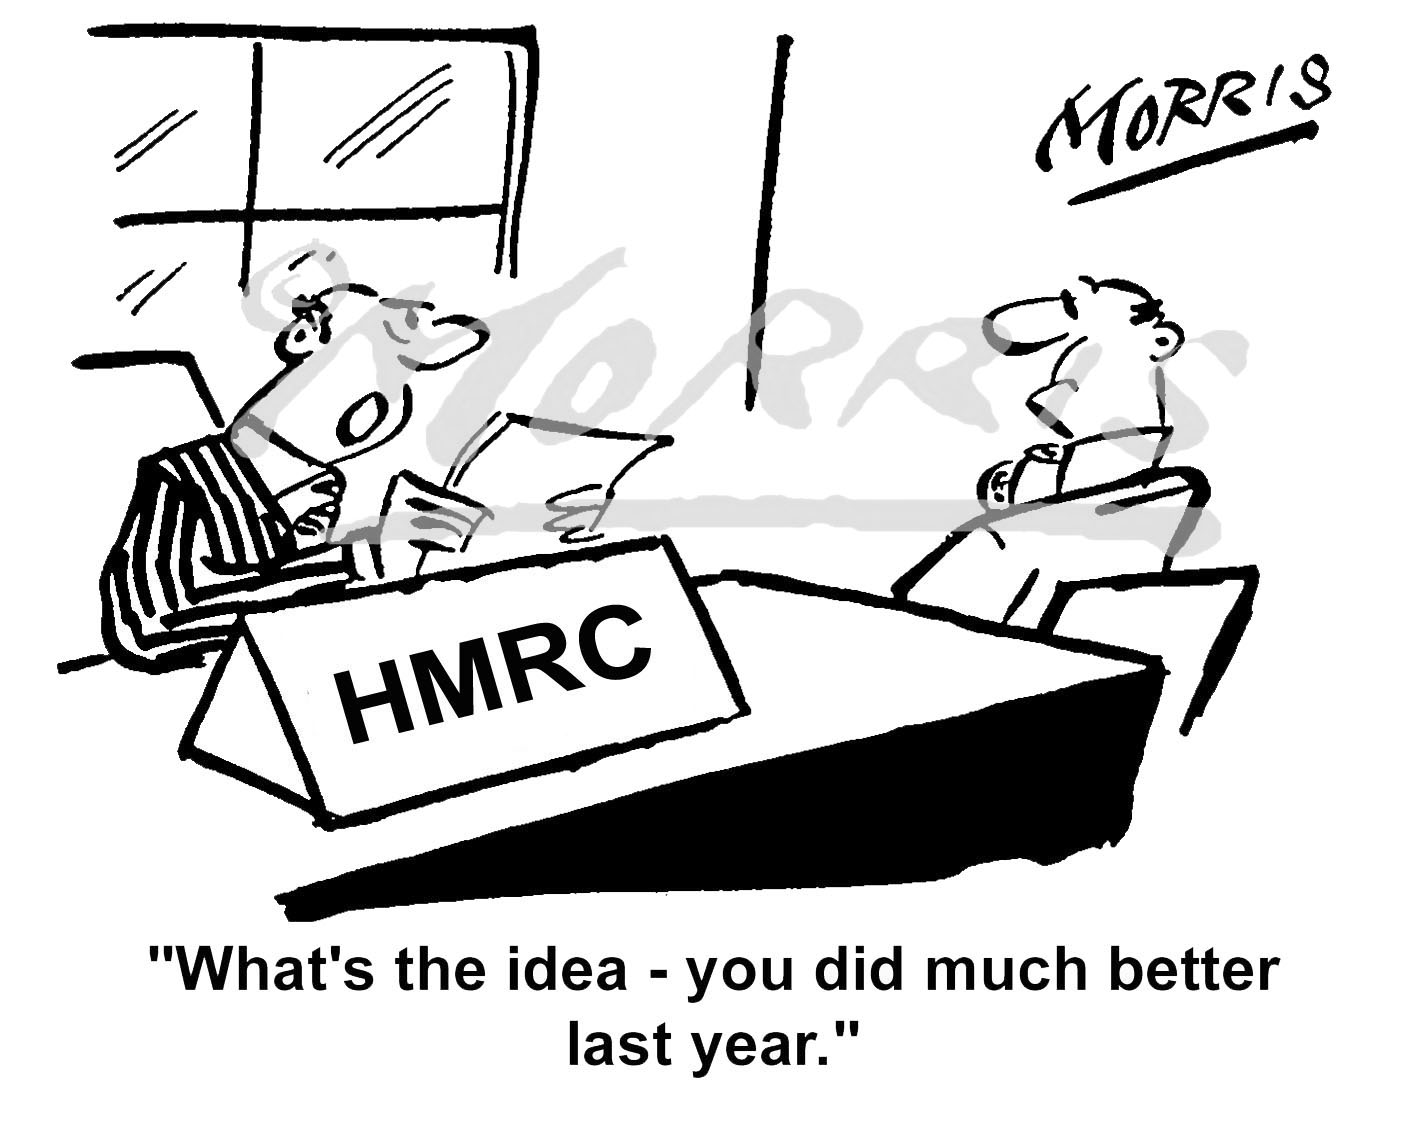 HMRC tax cartoon Ref: 0752bw